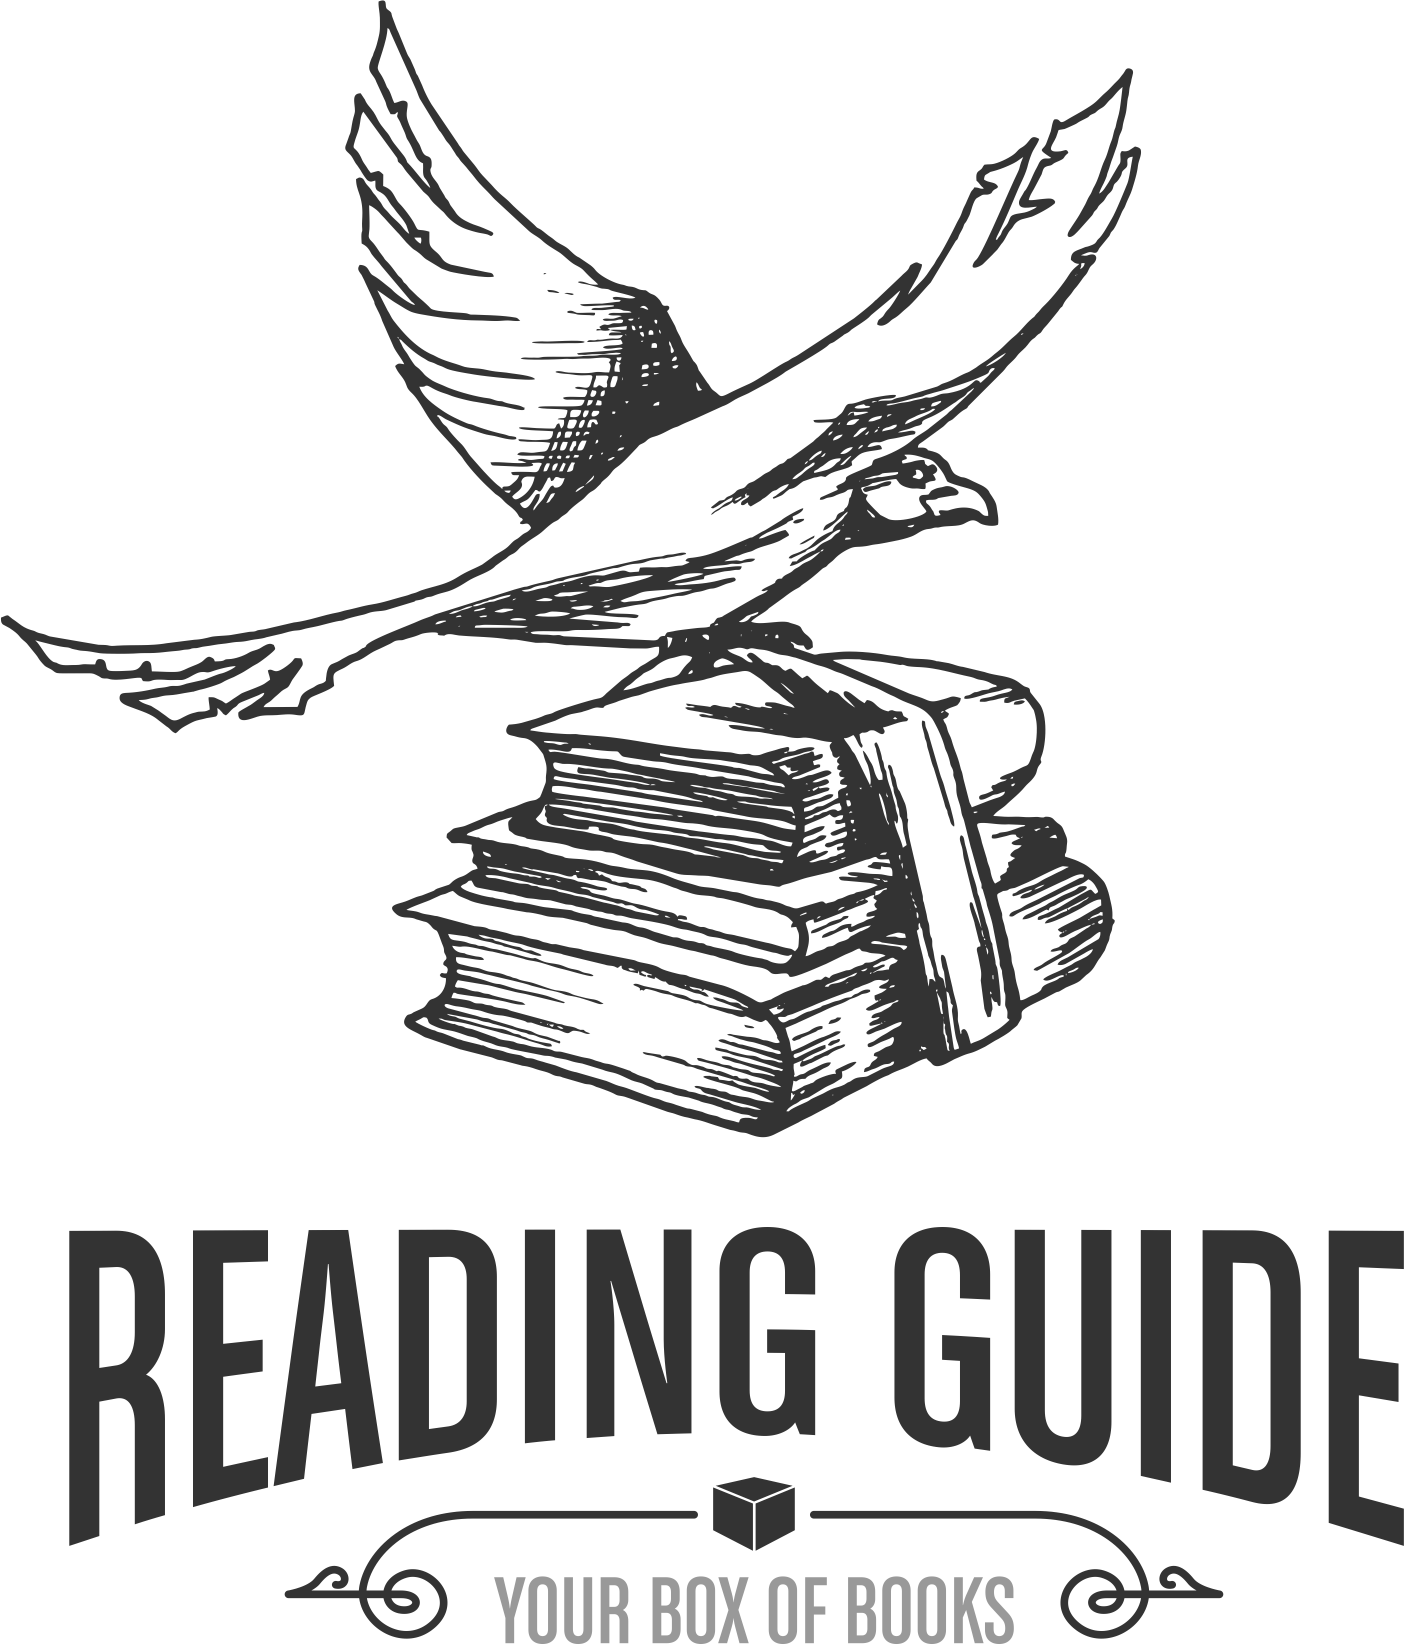 Challenge yourself to find a new look for Reading Guide